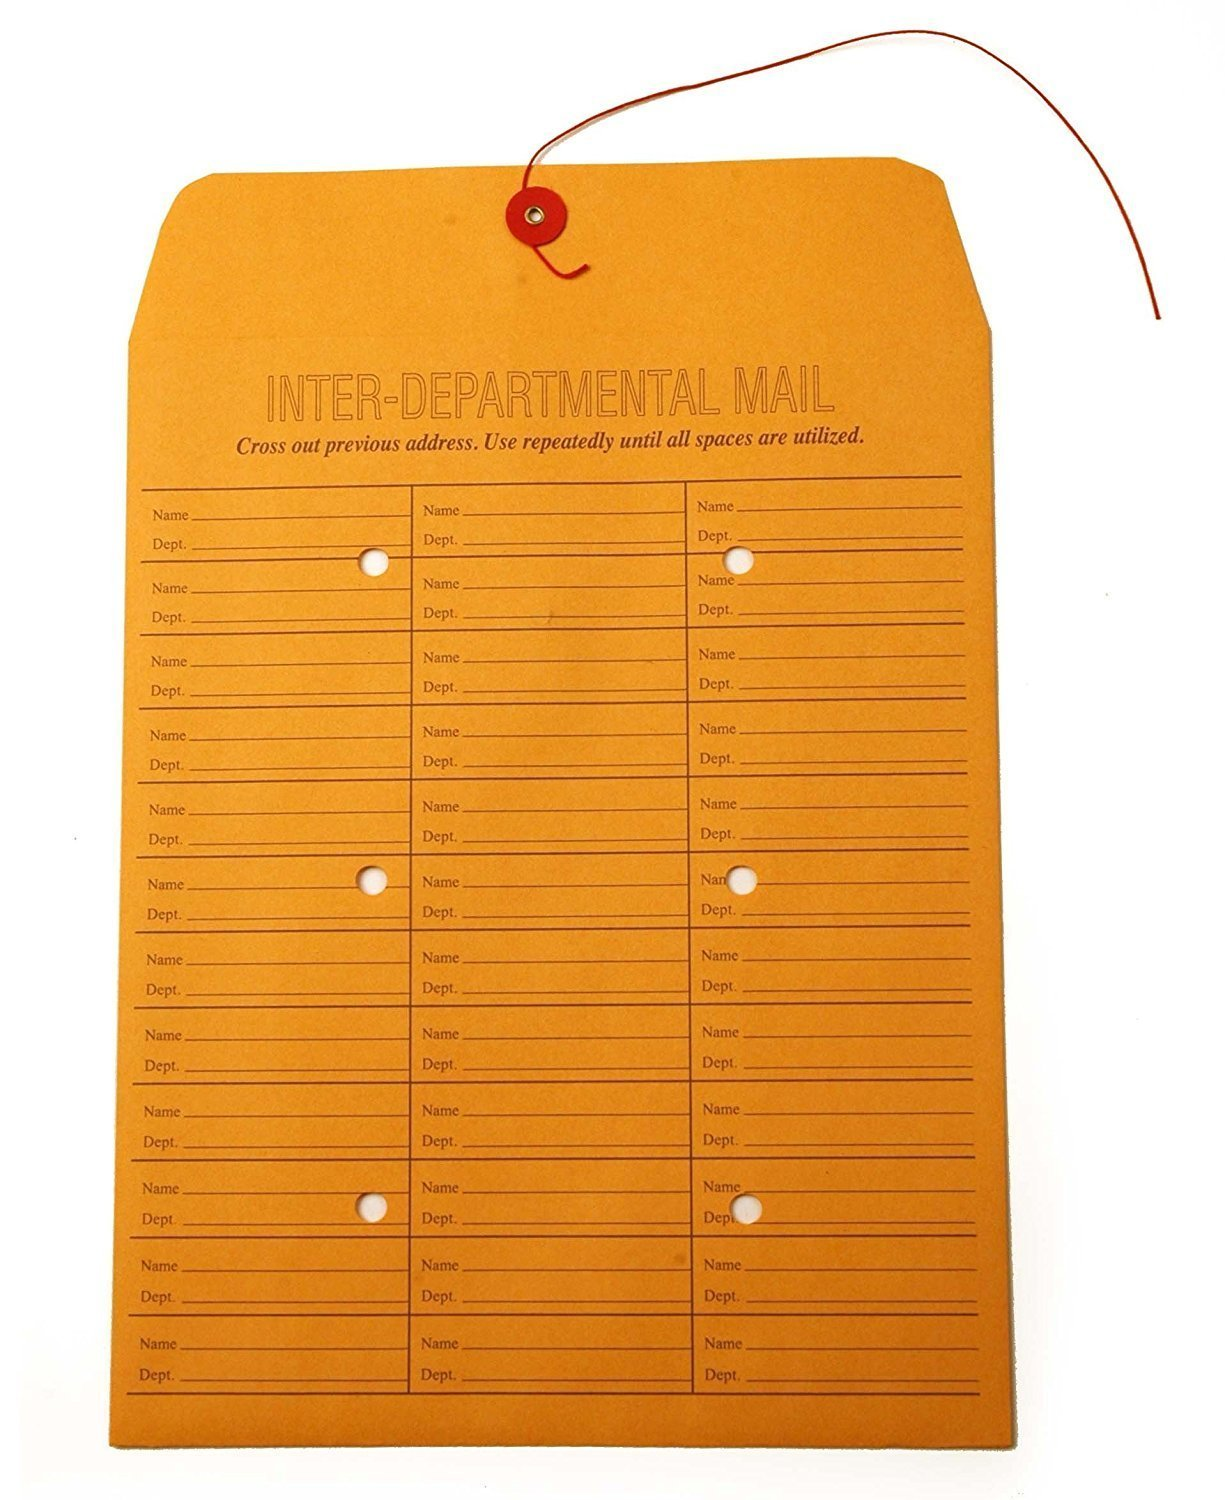 Quality String-Tie Inter-Department Envelopes, 12 x 16 Inches, 250 per Carton, Printed Both Sides - 71 Entries by Unisource-2832